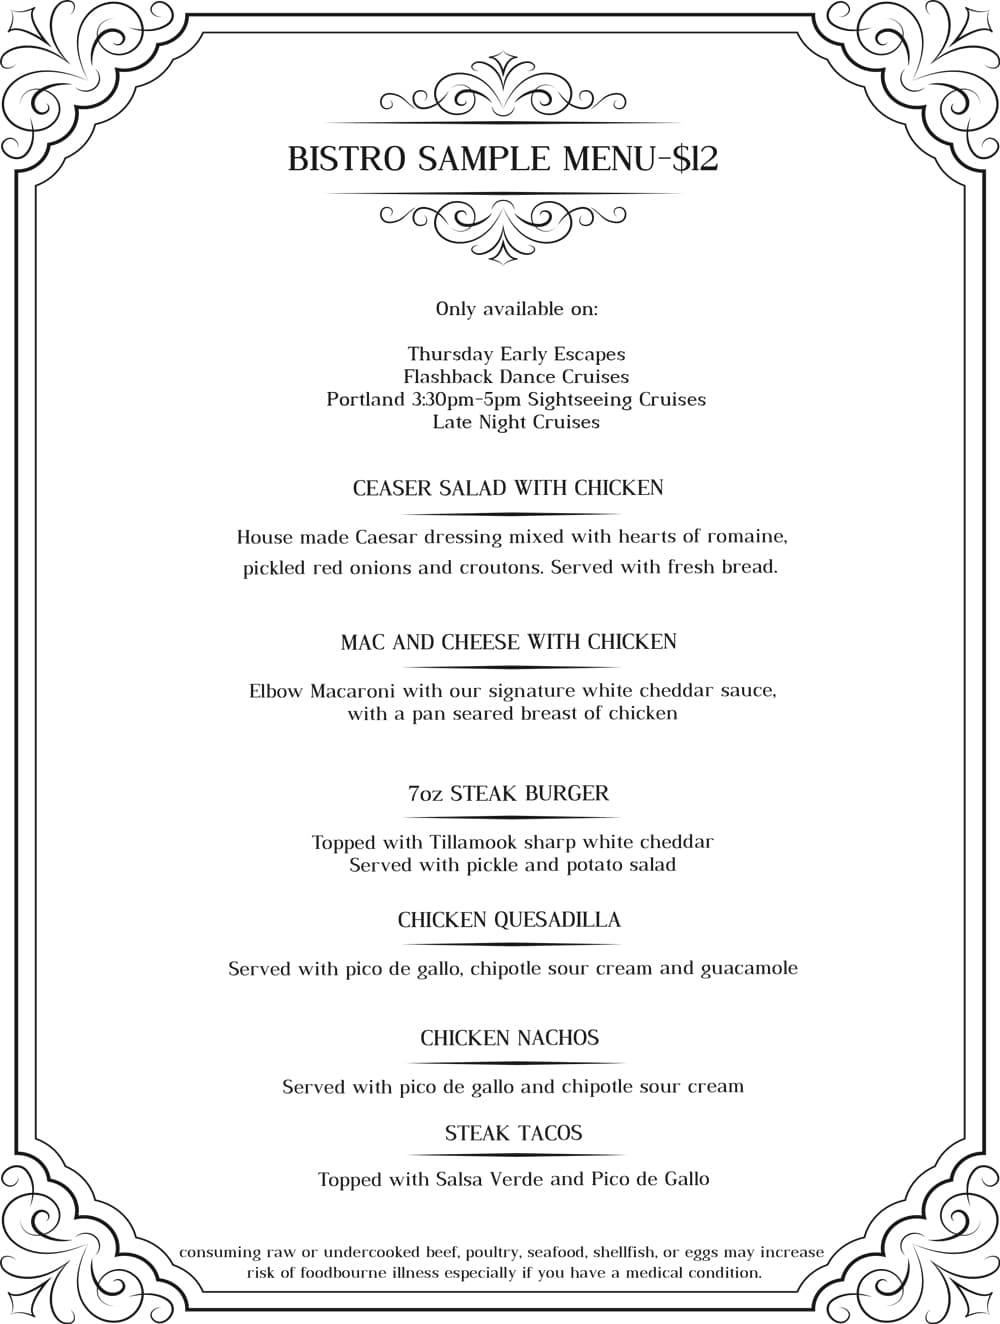 Porltand bistro sample menu